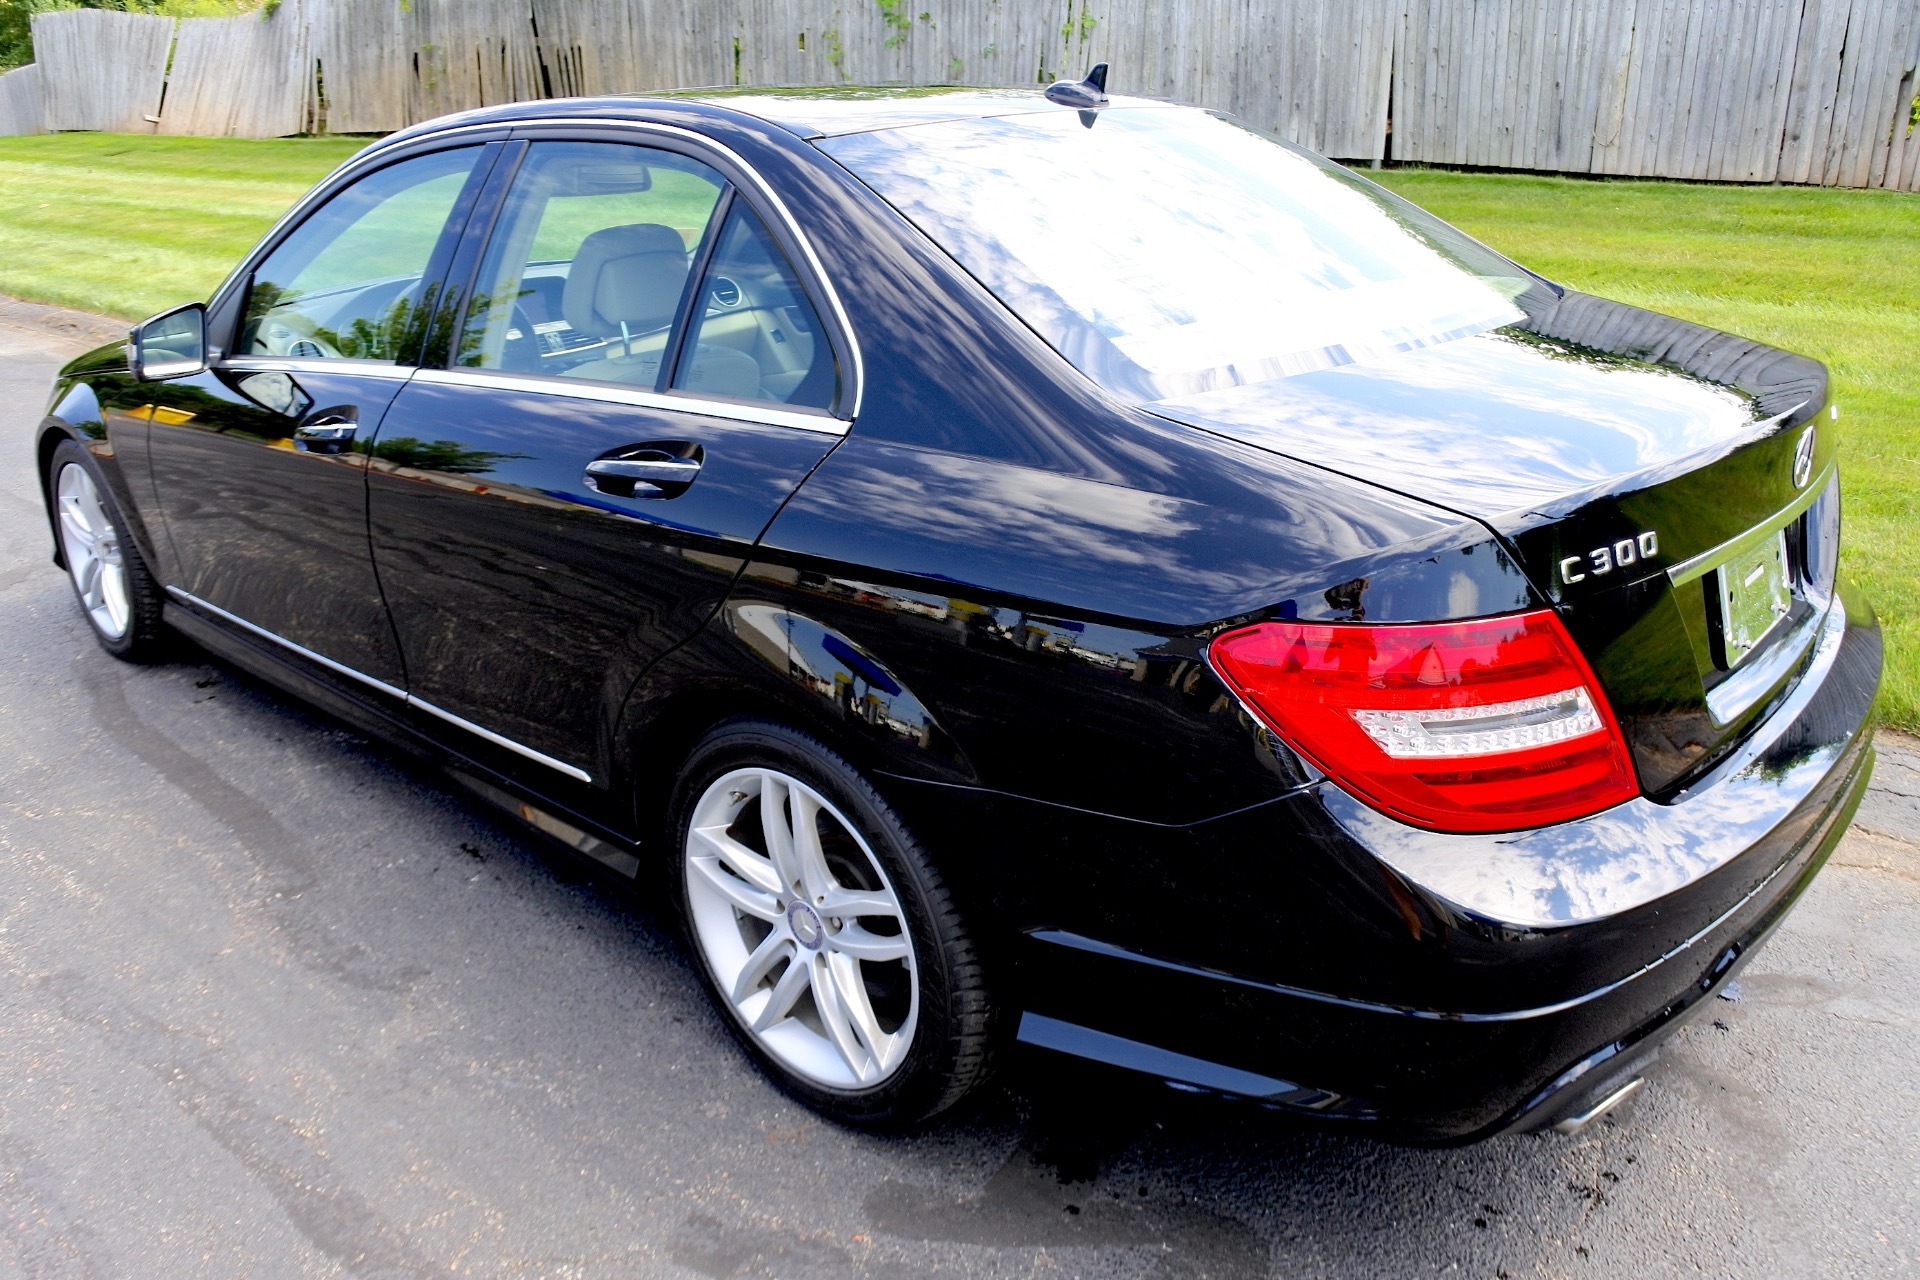 Used 2012 Mercedes-Benz C-class 4dr Sdn C300 Sport 4MATIC Used 2012 Mercedes-Benz C-class 4dr Sdn C300 Sport 4MATIC for sale  at Metro West Motorcars LLC in Shrewsbury MA 3